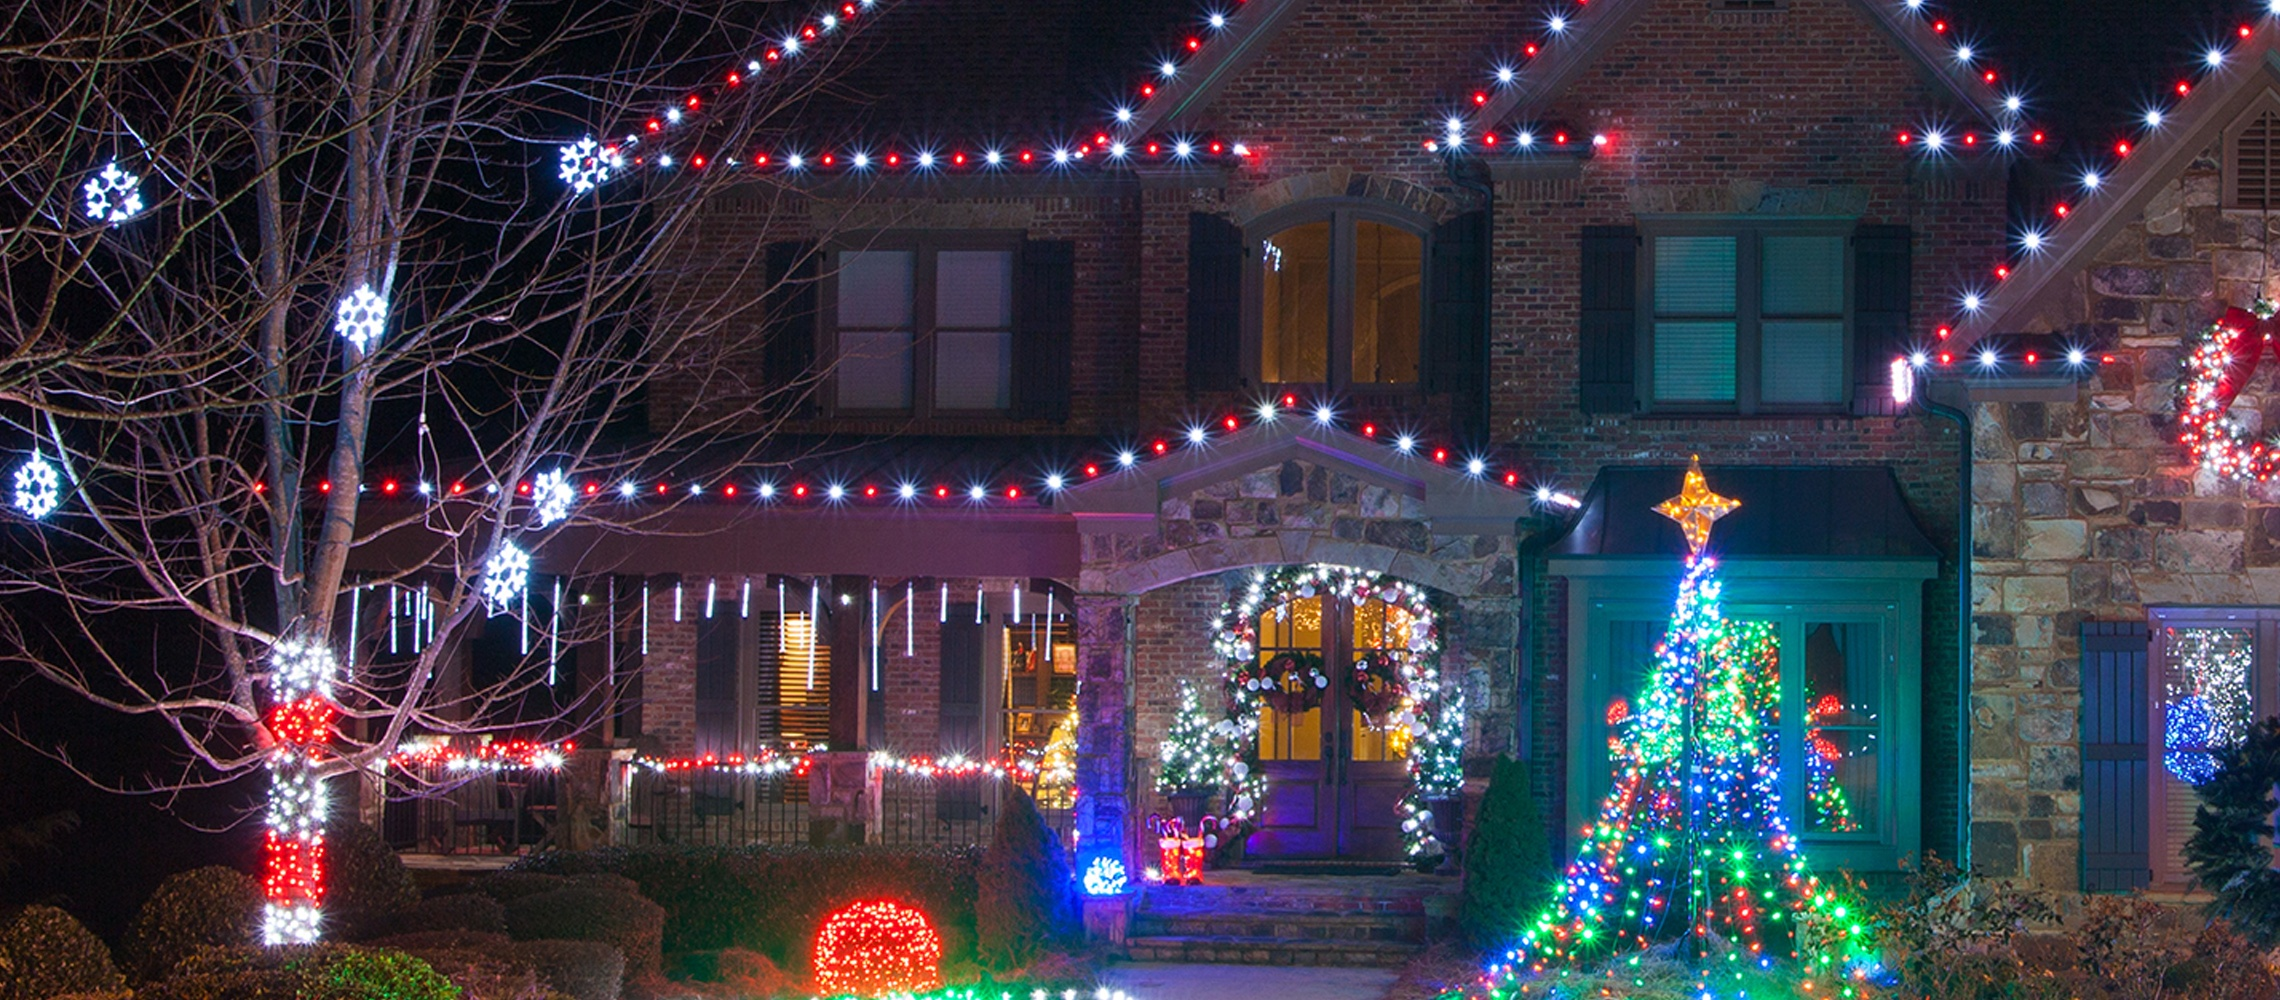 grand cascade roof lights image9jpg - Christmas Lights Decorations Outdoor Ideas